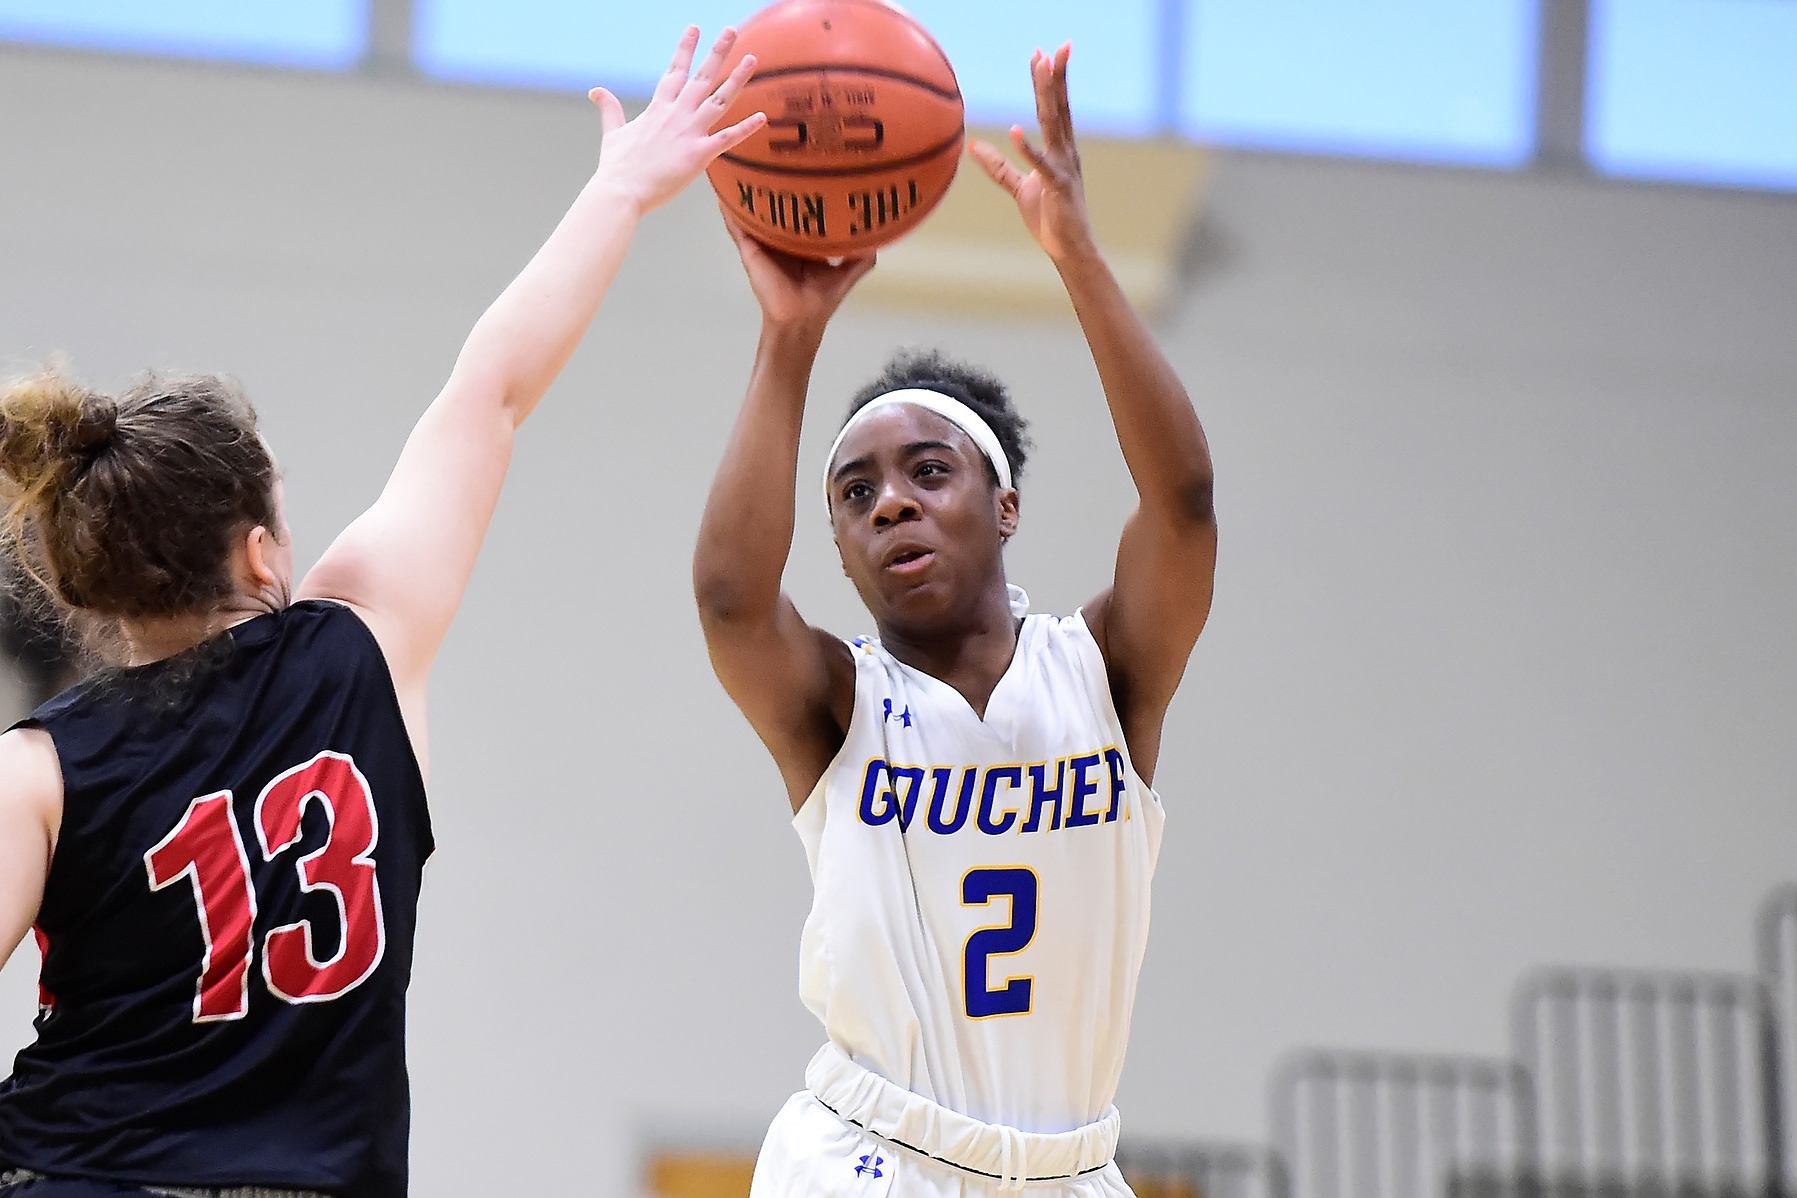 Goucher Ends 2018 With A Win Over Yeshiva, 79-76